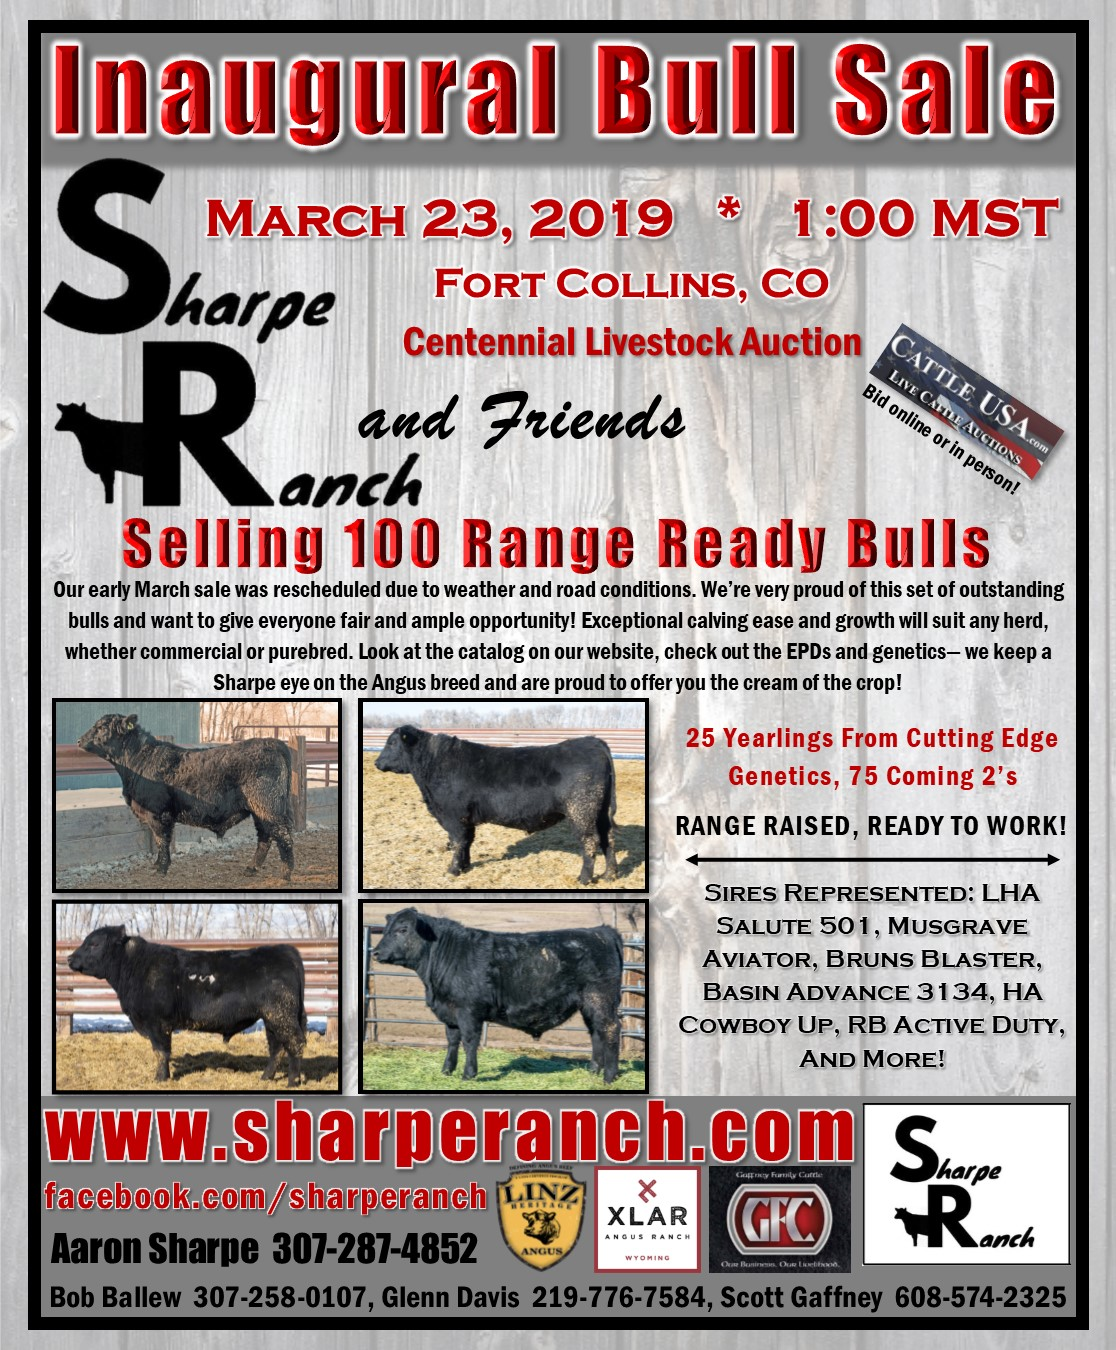 Fencepost March 11 2019 Full Page Sharpe Bull Sale for web.jpg